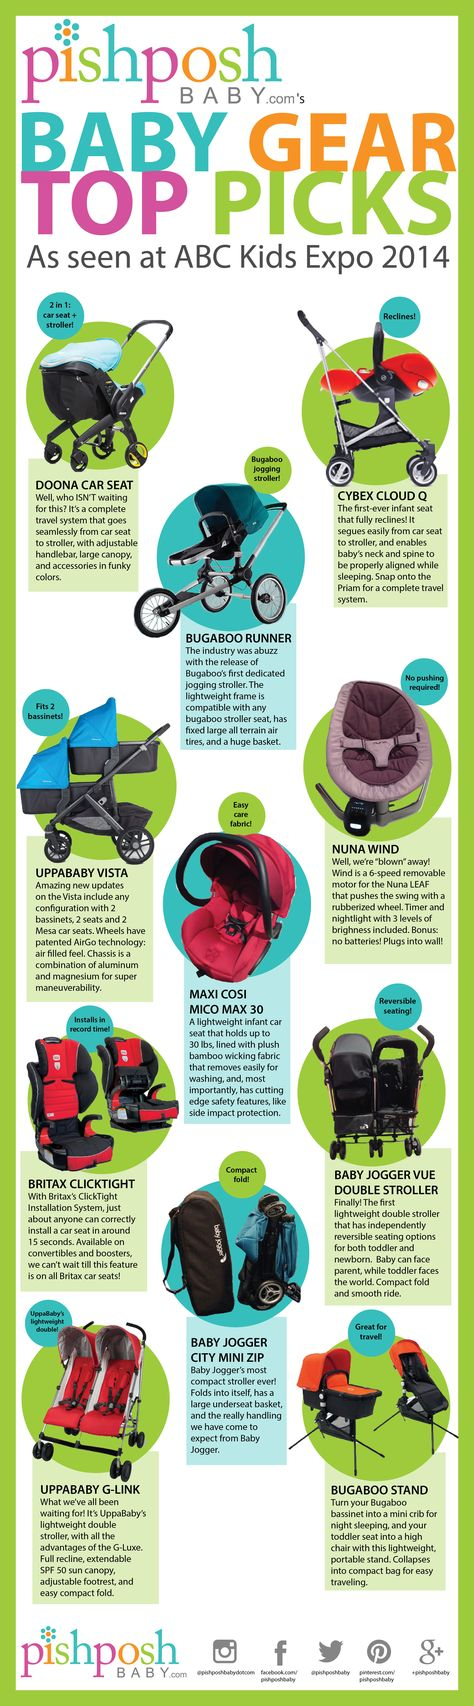 29 Baby Strollers And Baby Furniture Ideas